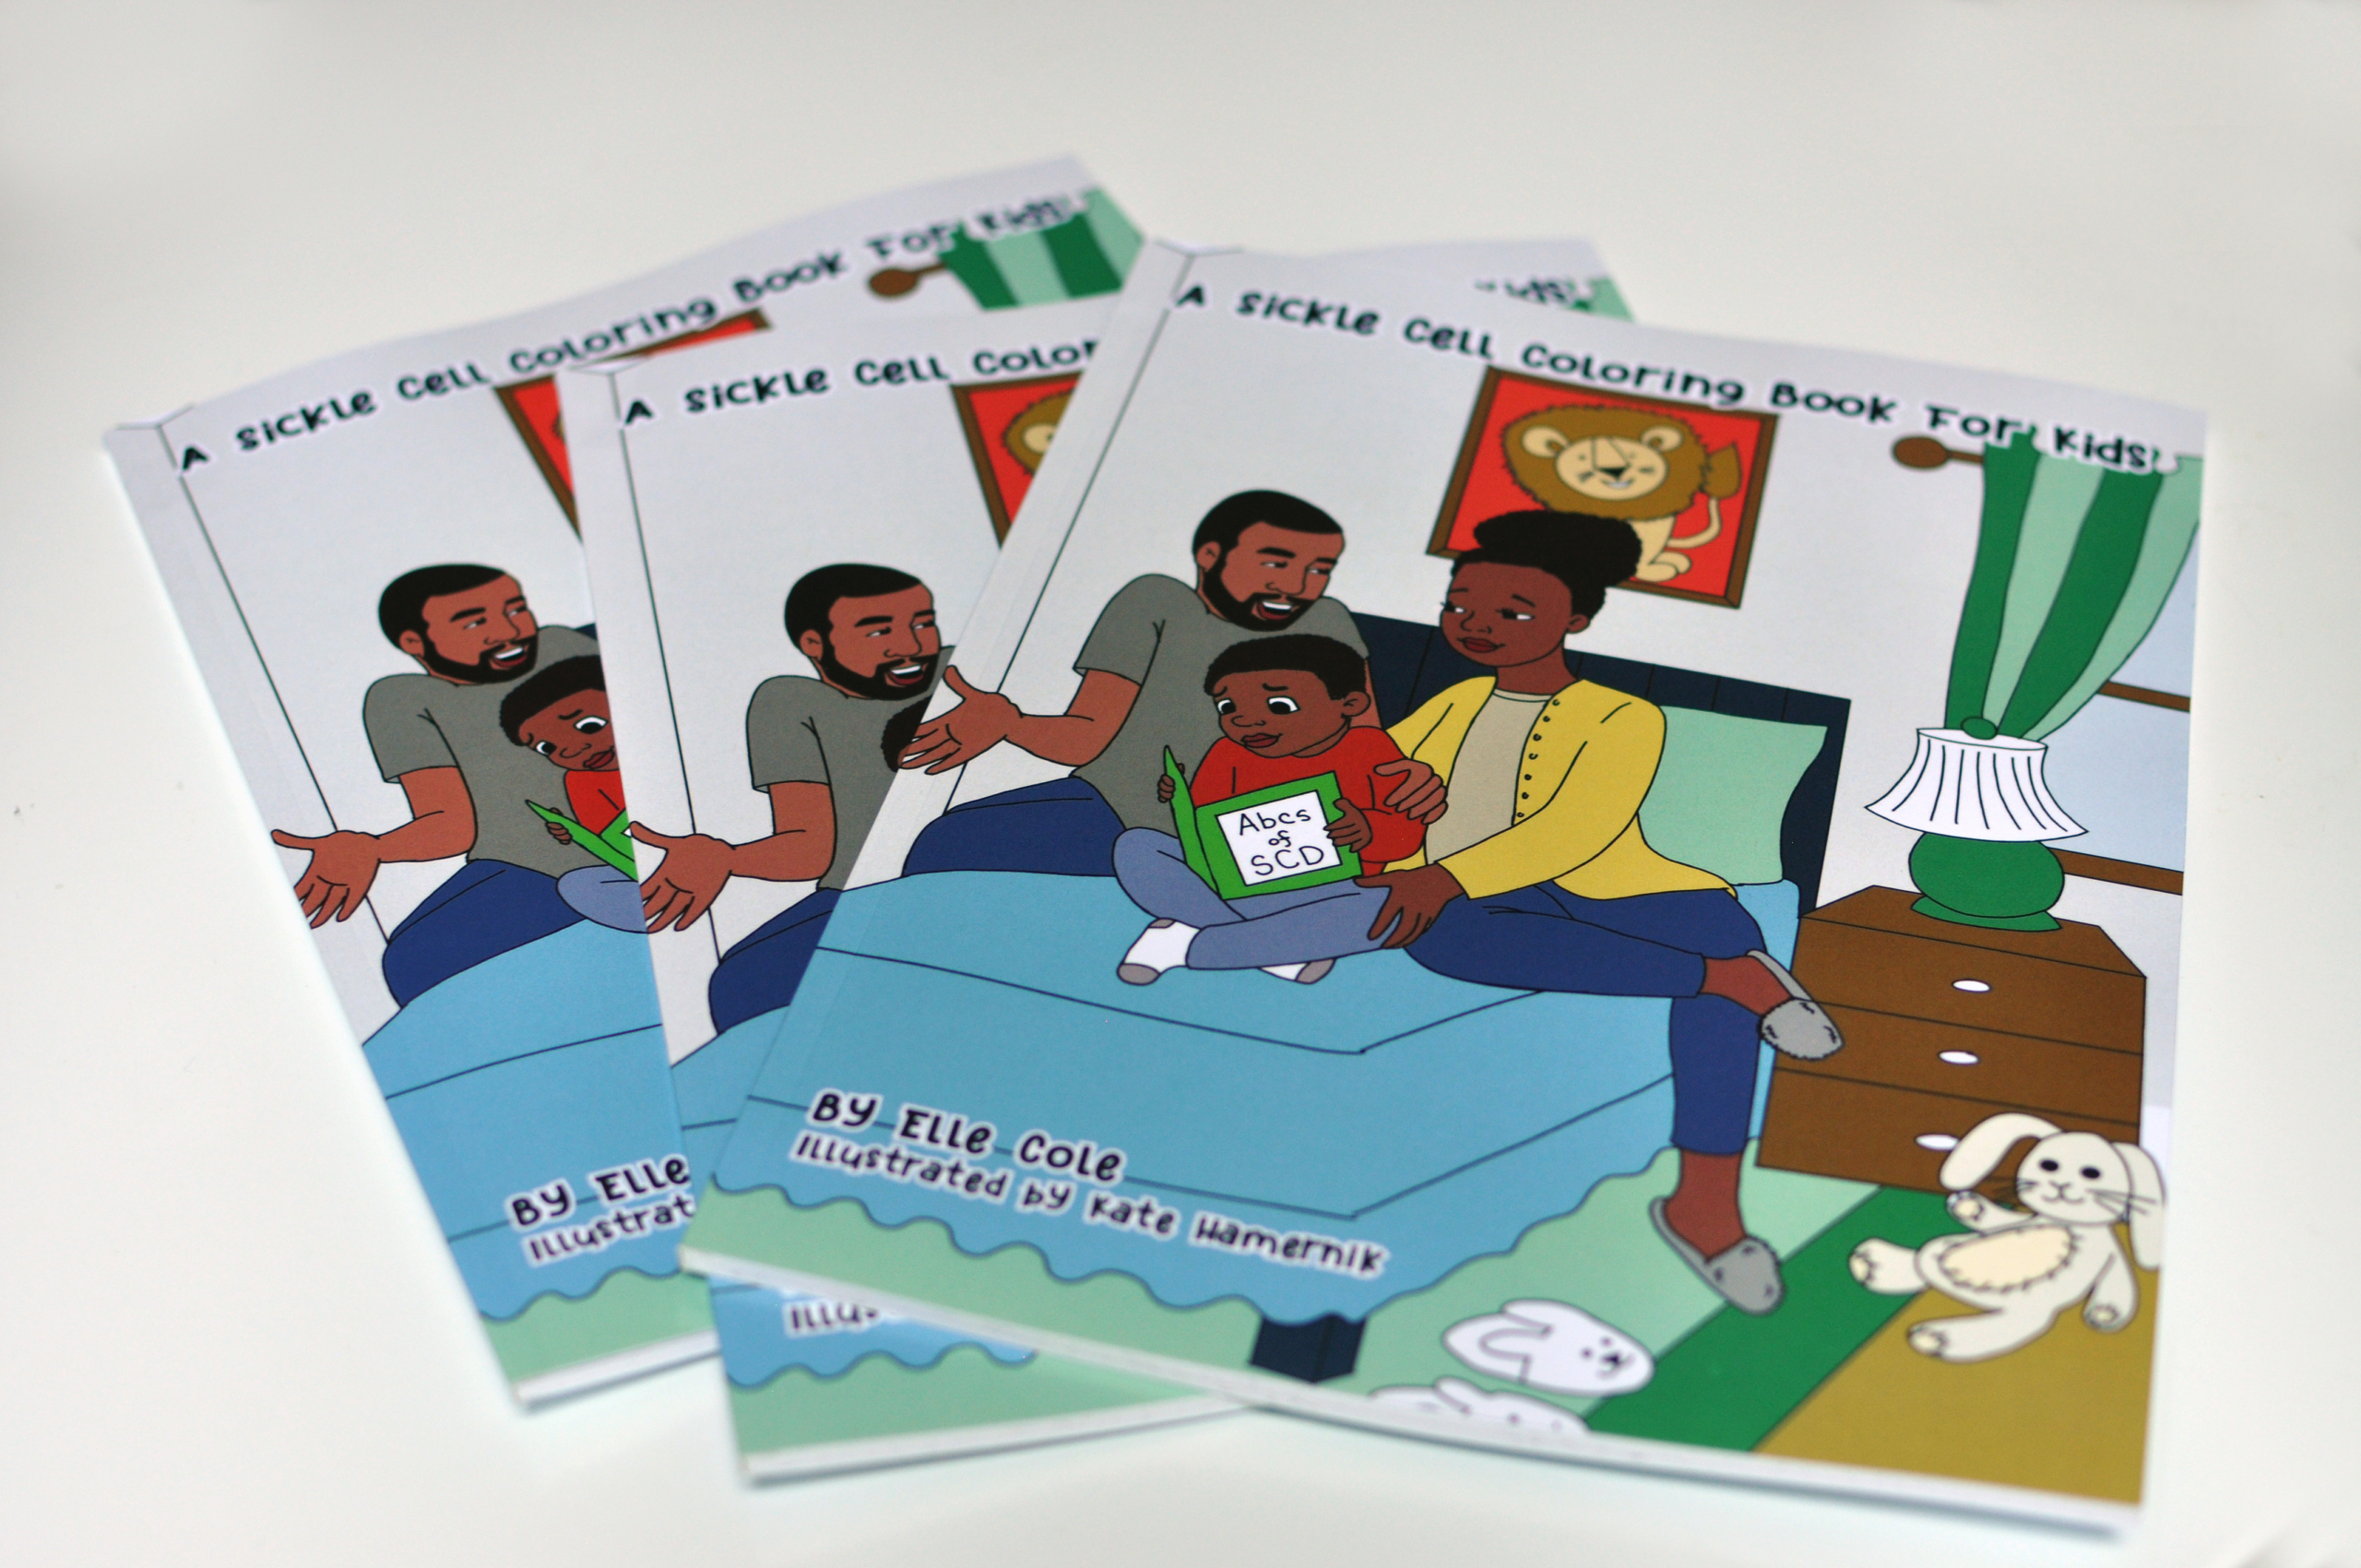 The Sickle Cell Coloring book for Kids was written for children ages 5-8. It is an educational resource for parents, caregivers, and children. The book breaks down terms and concepts for children who were diagnosed with sickle cell disease (SCD).